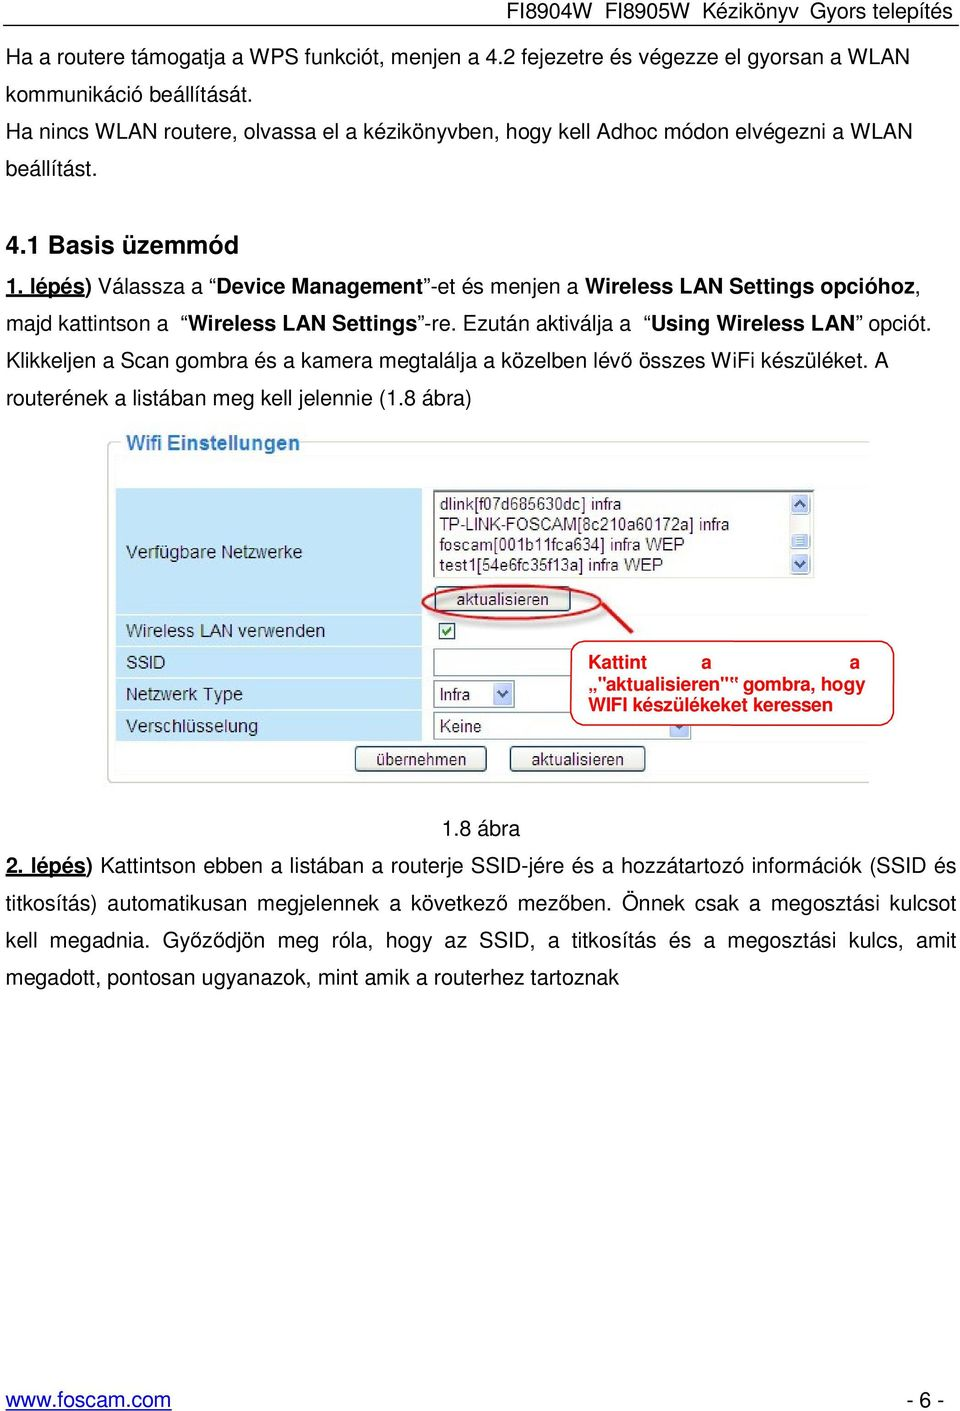 lépés) Válassza a Device Management -et és menjen a Wireless LAN Settings opcióhoz, majd kattintson a Wireless LAN Settings -re. Ezután aktiválja a Using Wireless LAN opciót.